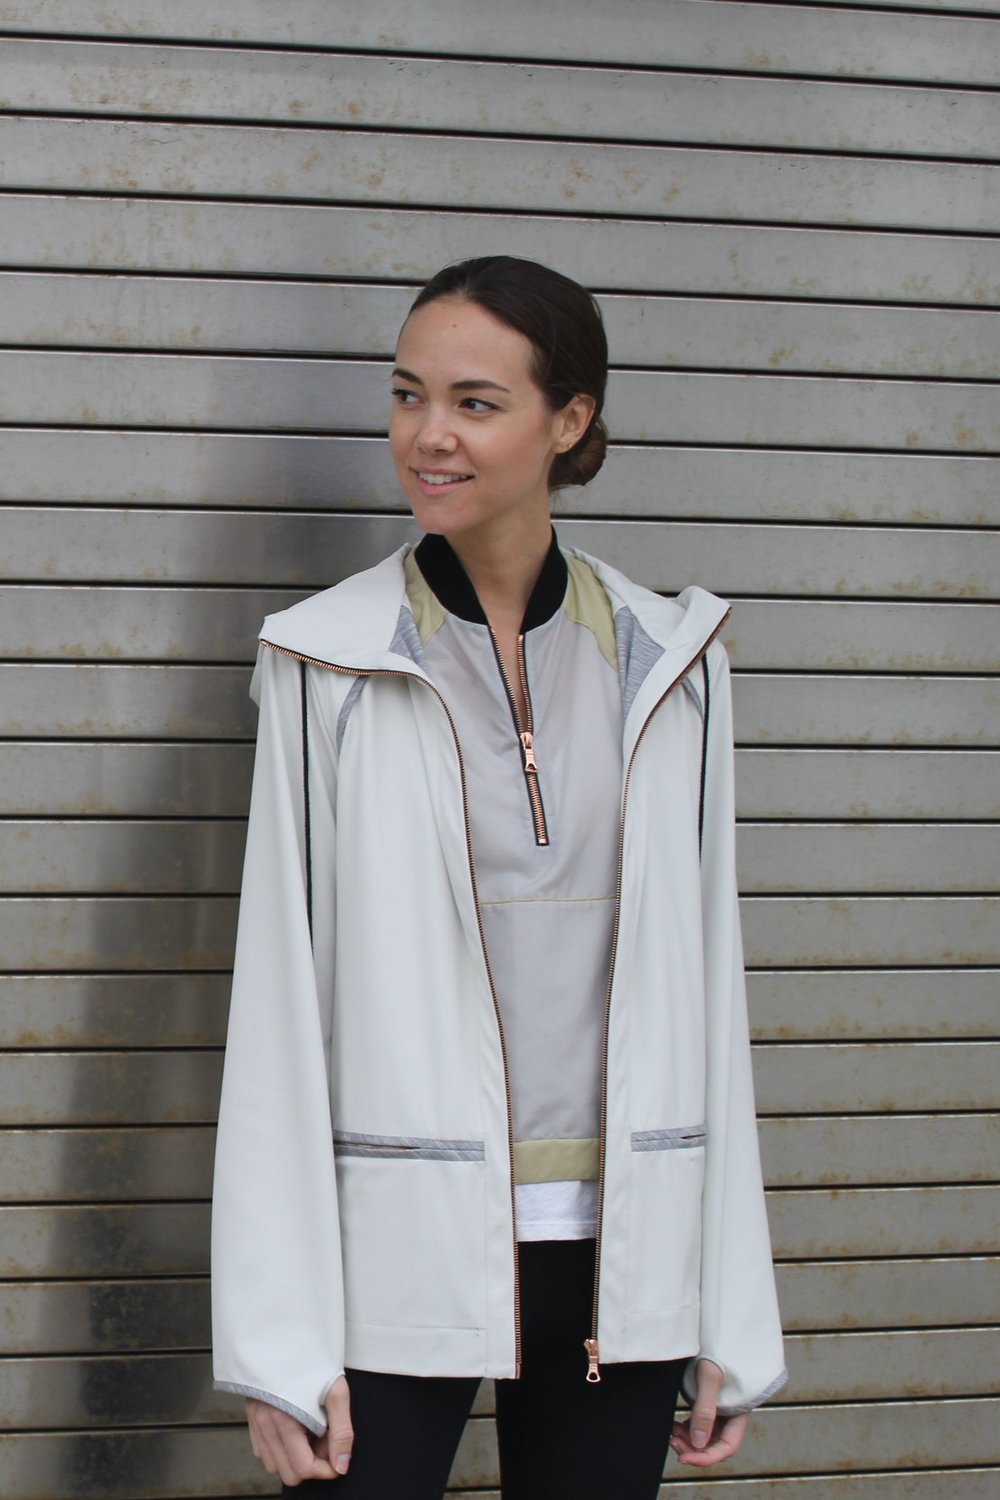 Clever thumbholes prevent your sleeves from riding up.